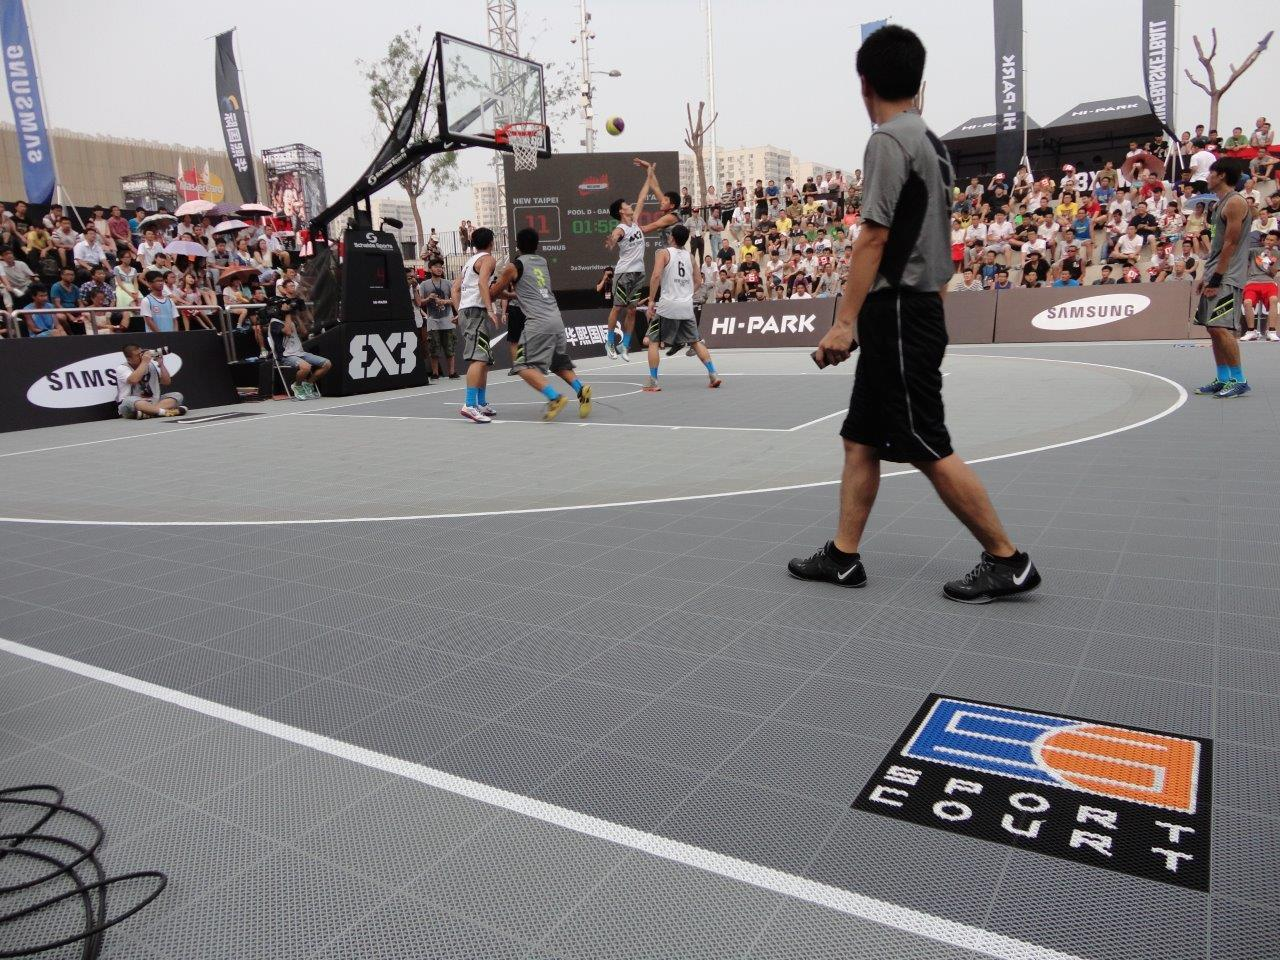 3x3 action on the Sport Court Basketball Court